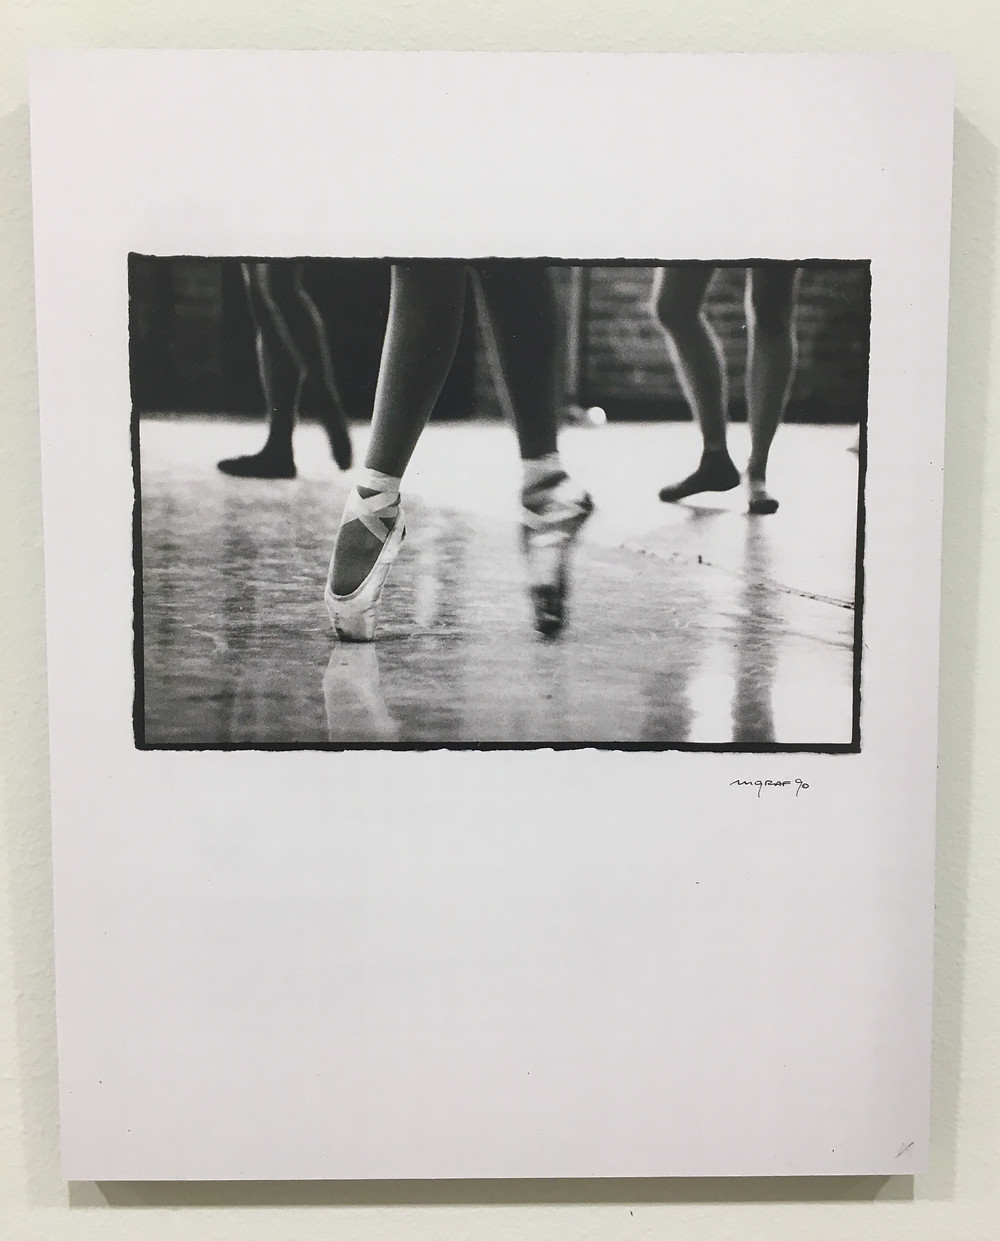 Dance Theatre of Harlem co-founder Arthur Mitchell was the focus of a show earlier this year at Columbia's Wallach Art Gallery